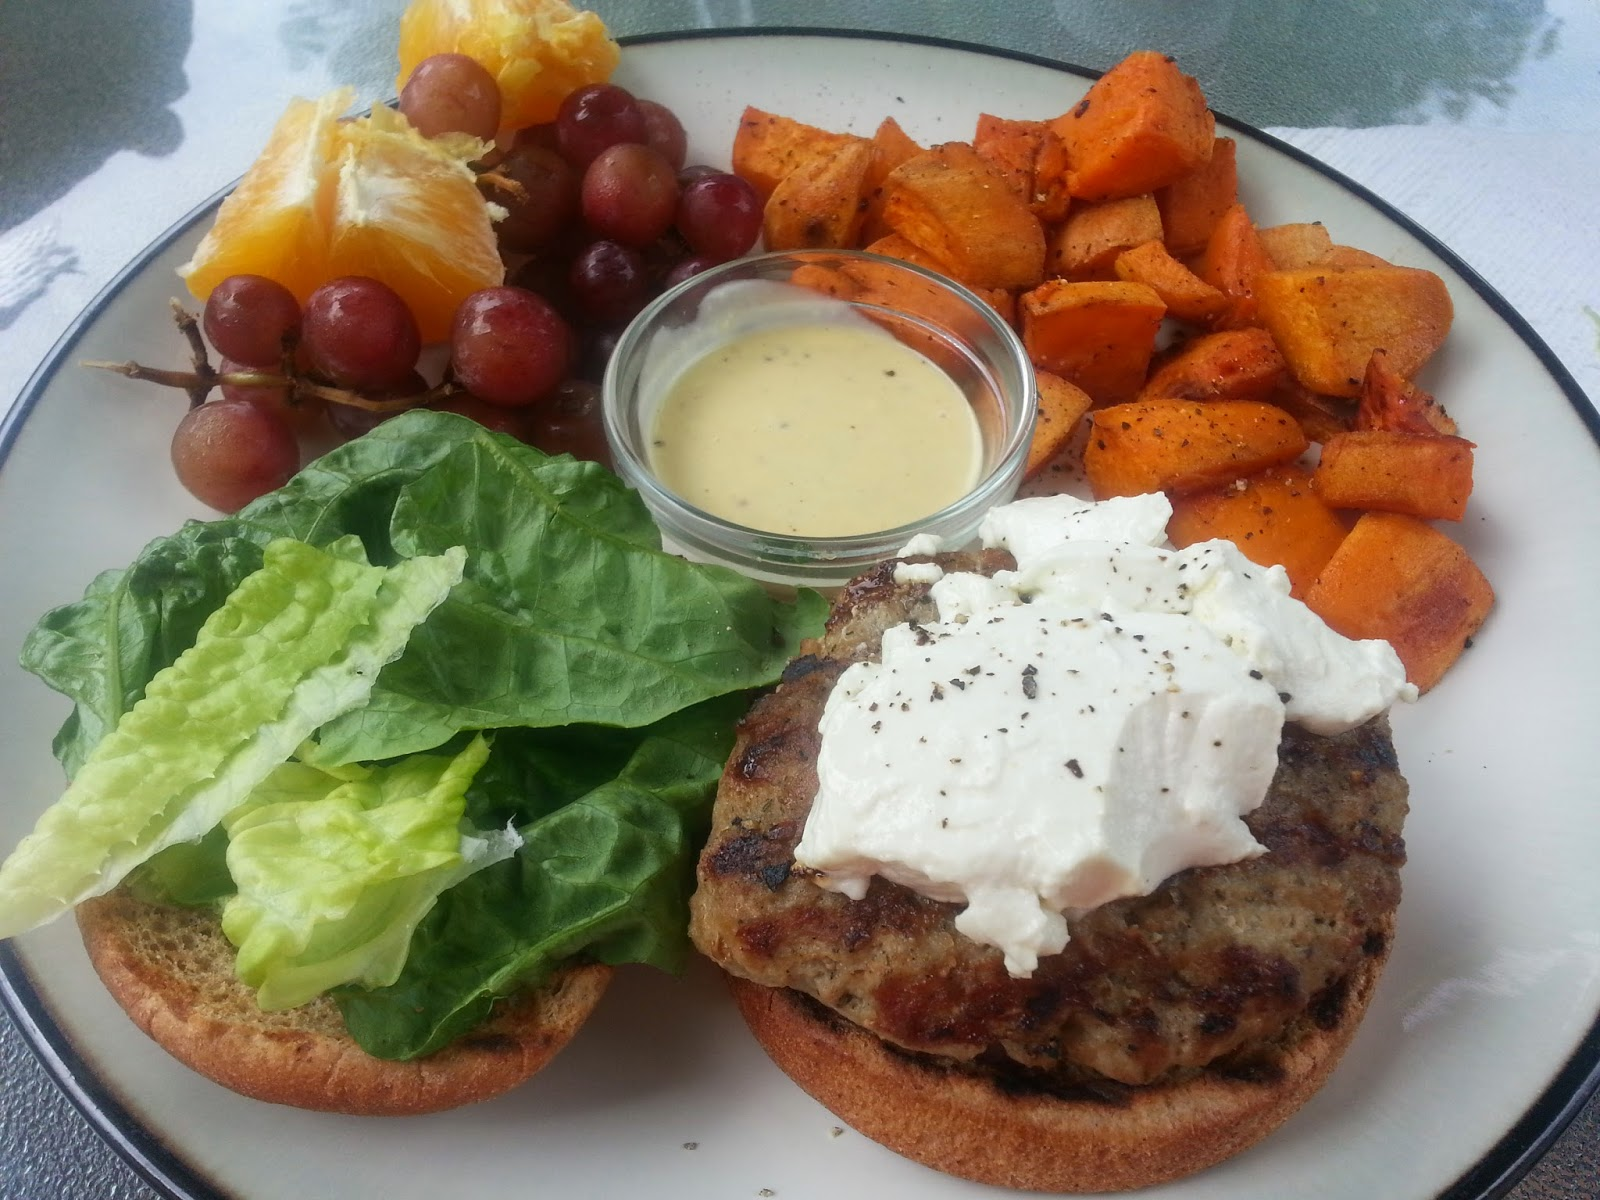 Grilled Turkey Burgers with Goat Cheese and Honey Mustard